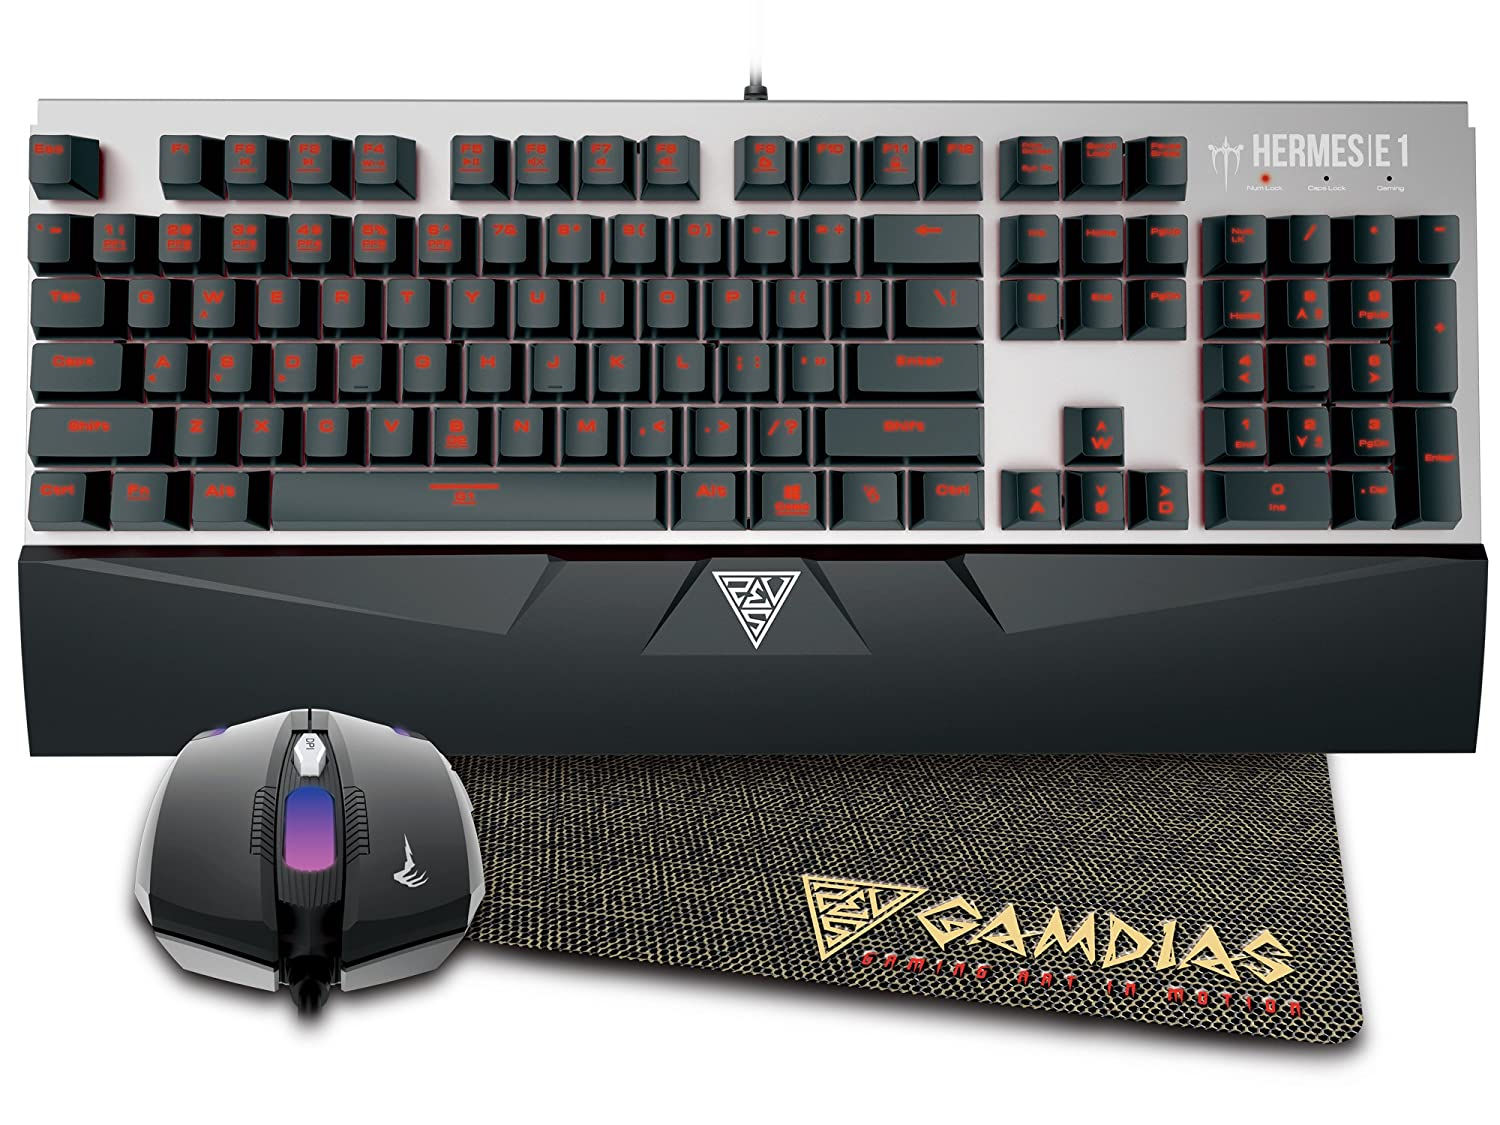 Gamdias Hermes E1 Mechanical Keyboard And Mouse With Pad Buy Gaming E Blue Value Pack Online At Low Price In